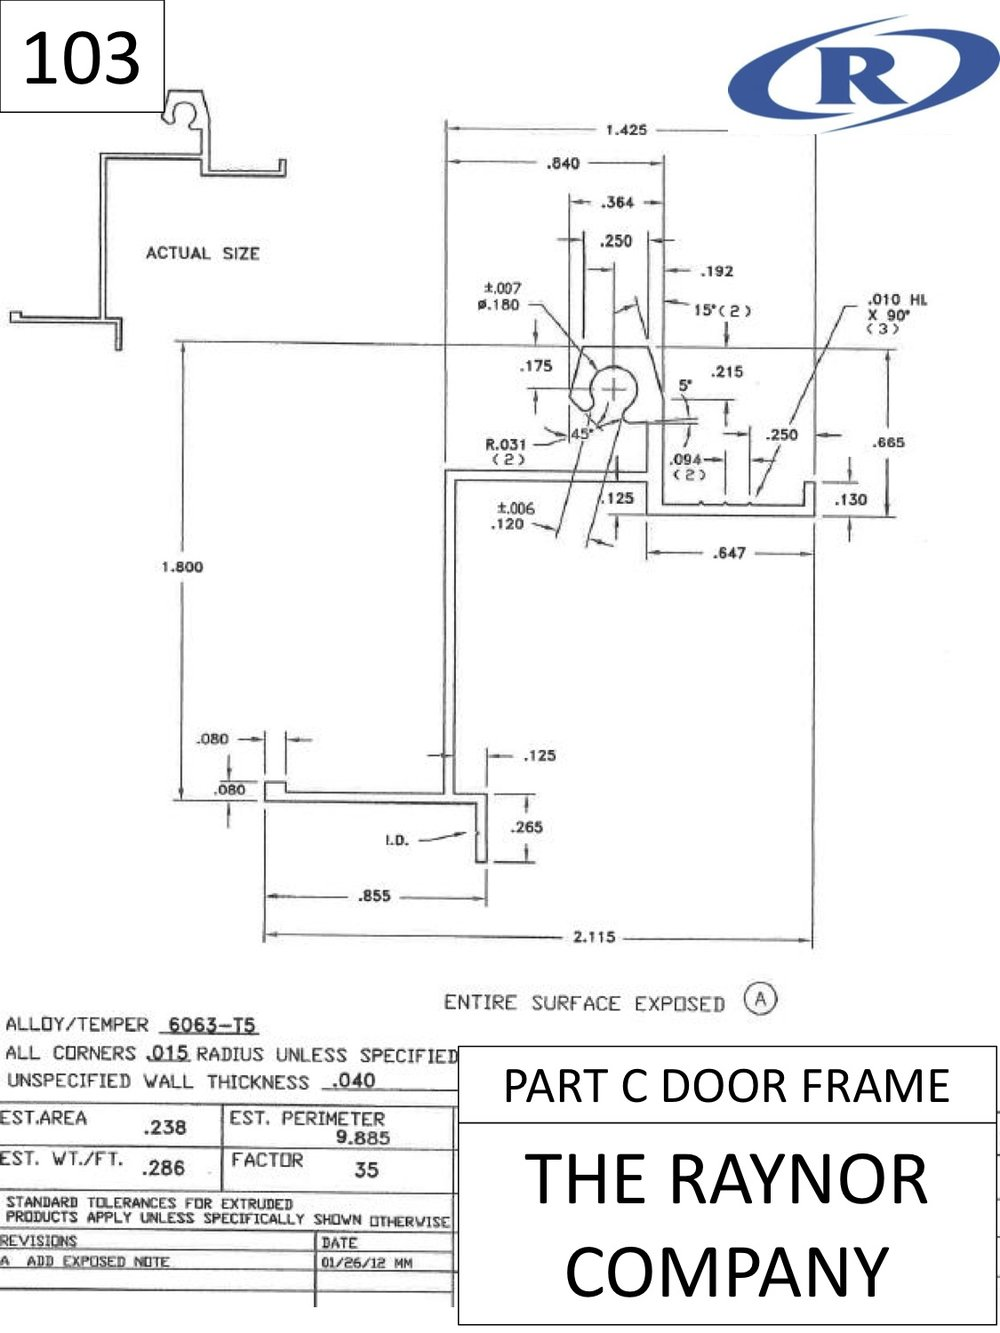 Part C Door Frame